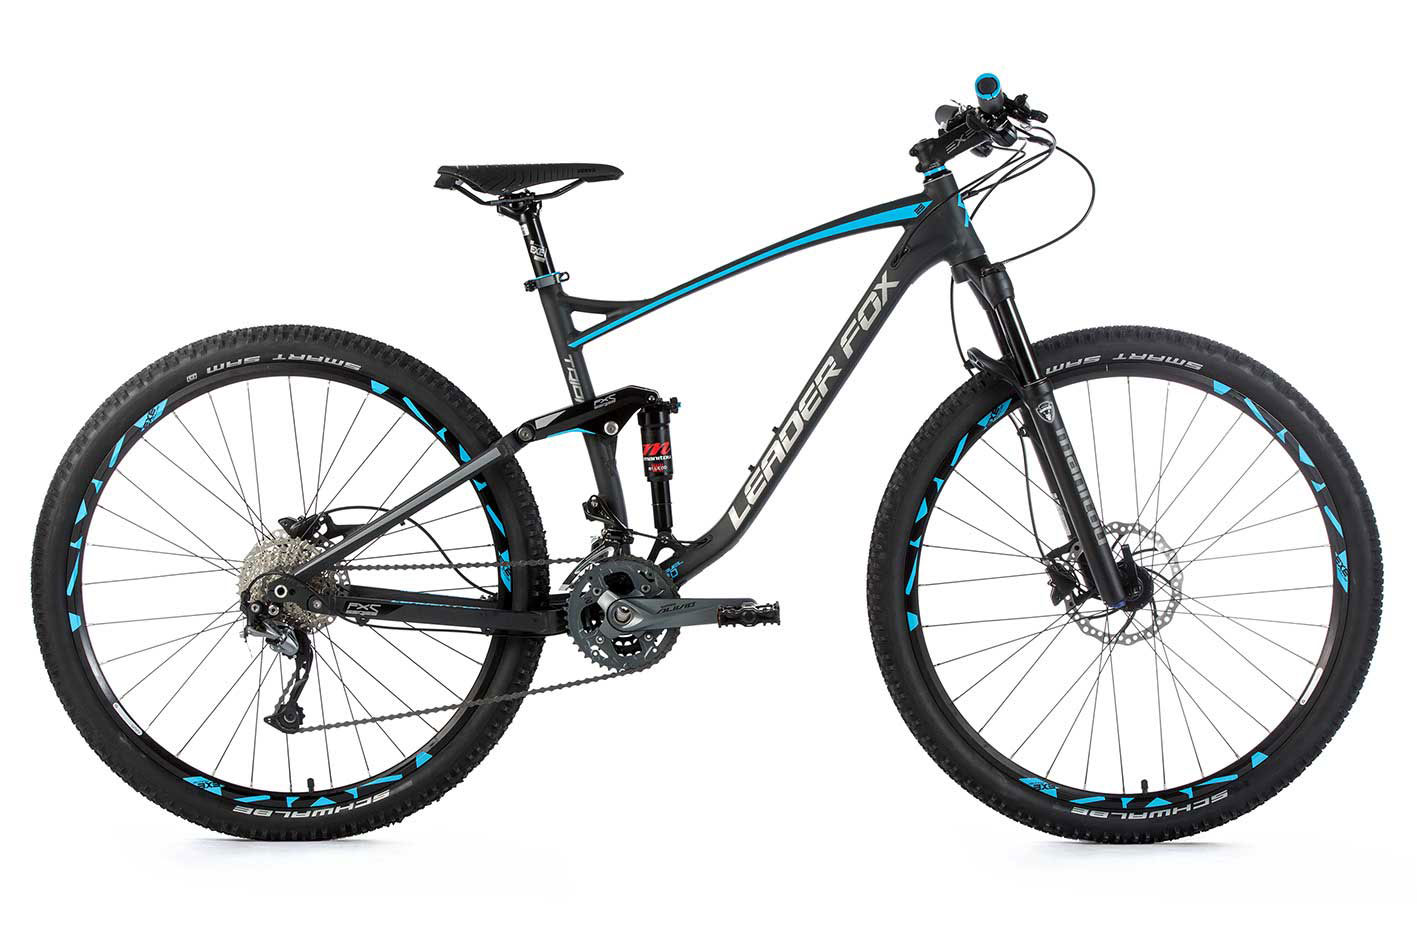 Bicicleta MTB 29 inch full suspension Leader Fox Trion